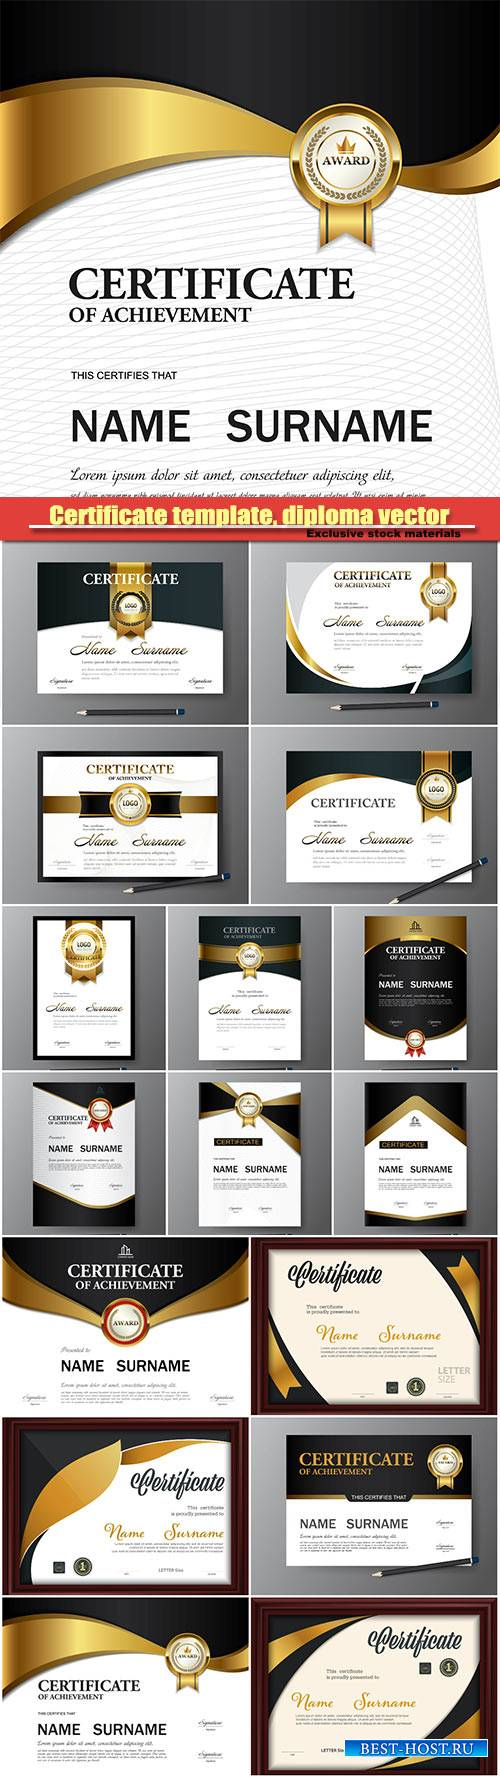 Certificate template, diploma, vector illustration